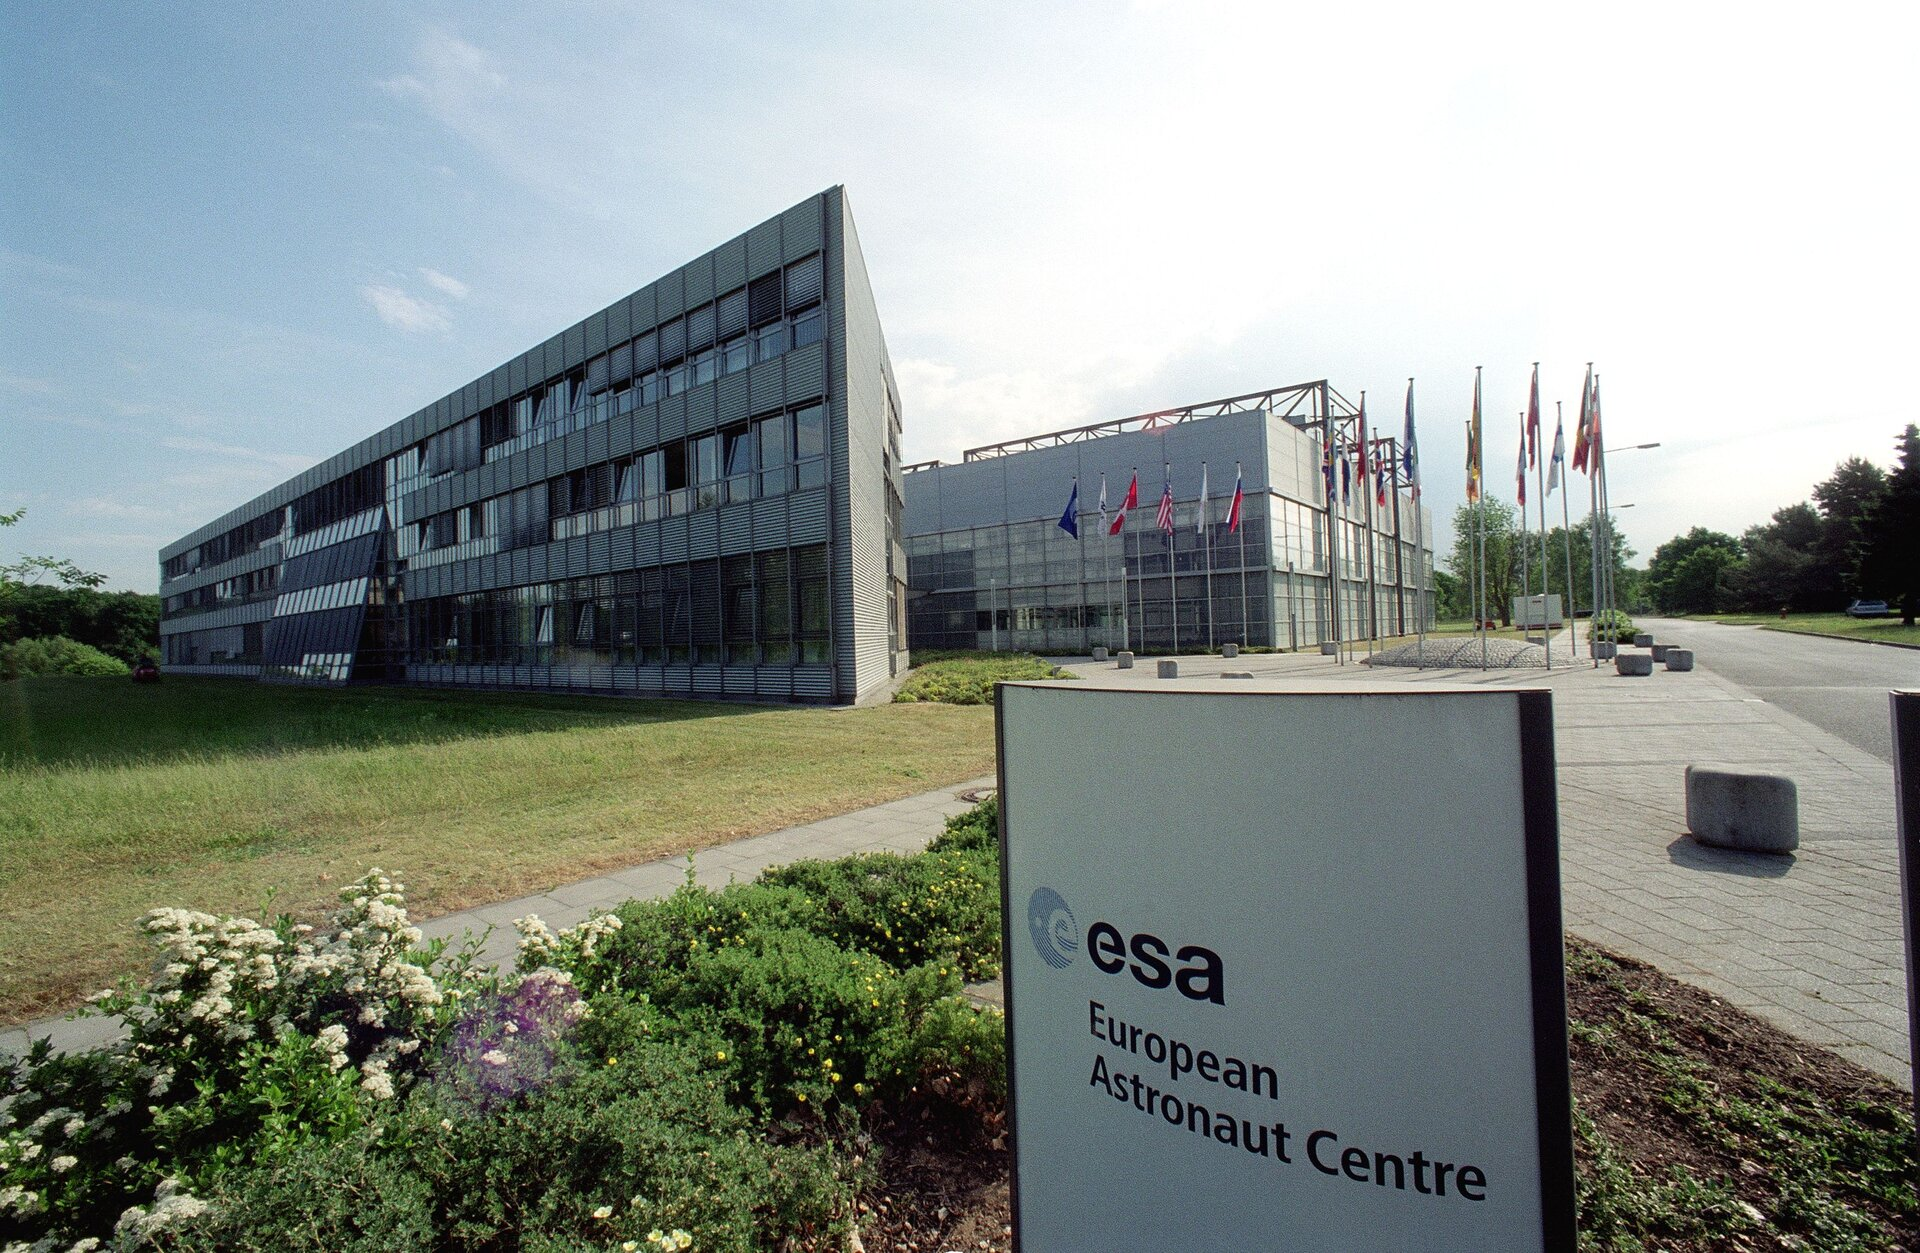 The European Astronaut Centre in Cologne, Germany